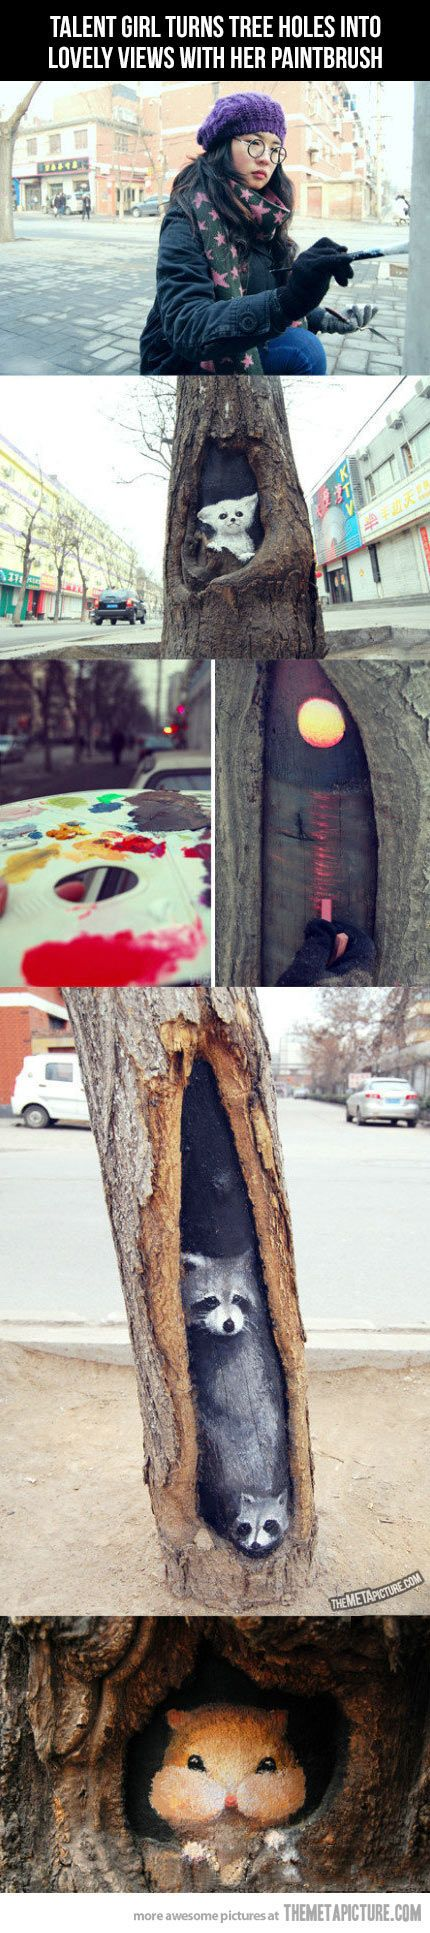 College student Wang Yue has turned tree holes into works of art in the streets Shijiazhuang, China Read more at: http://www.123inspiration.com/college-student-turns-tree-holes-into-works-of-art/